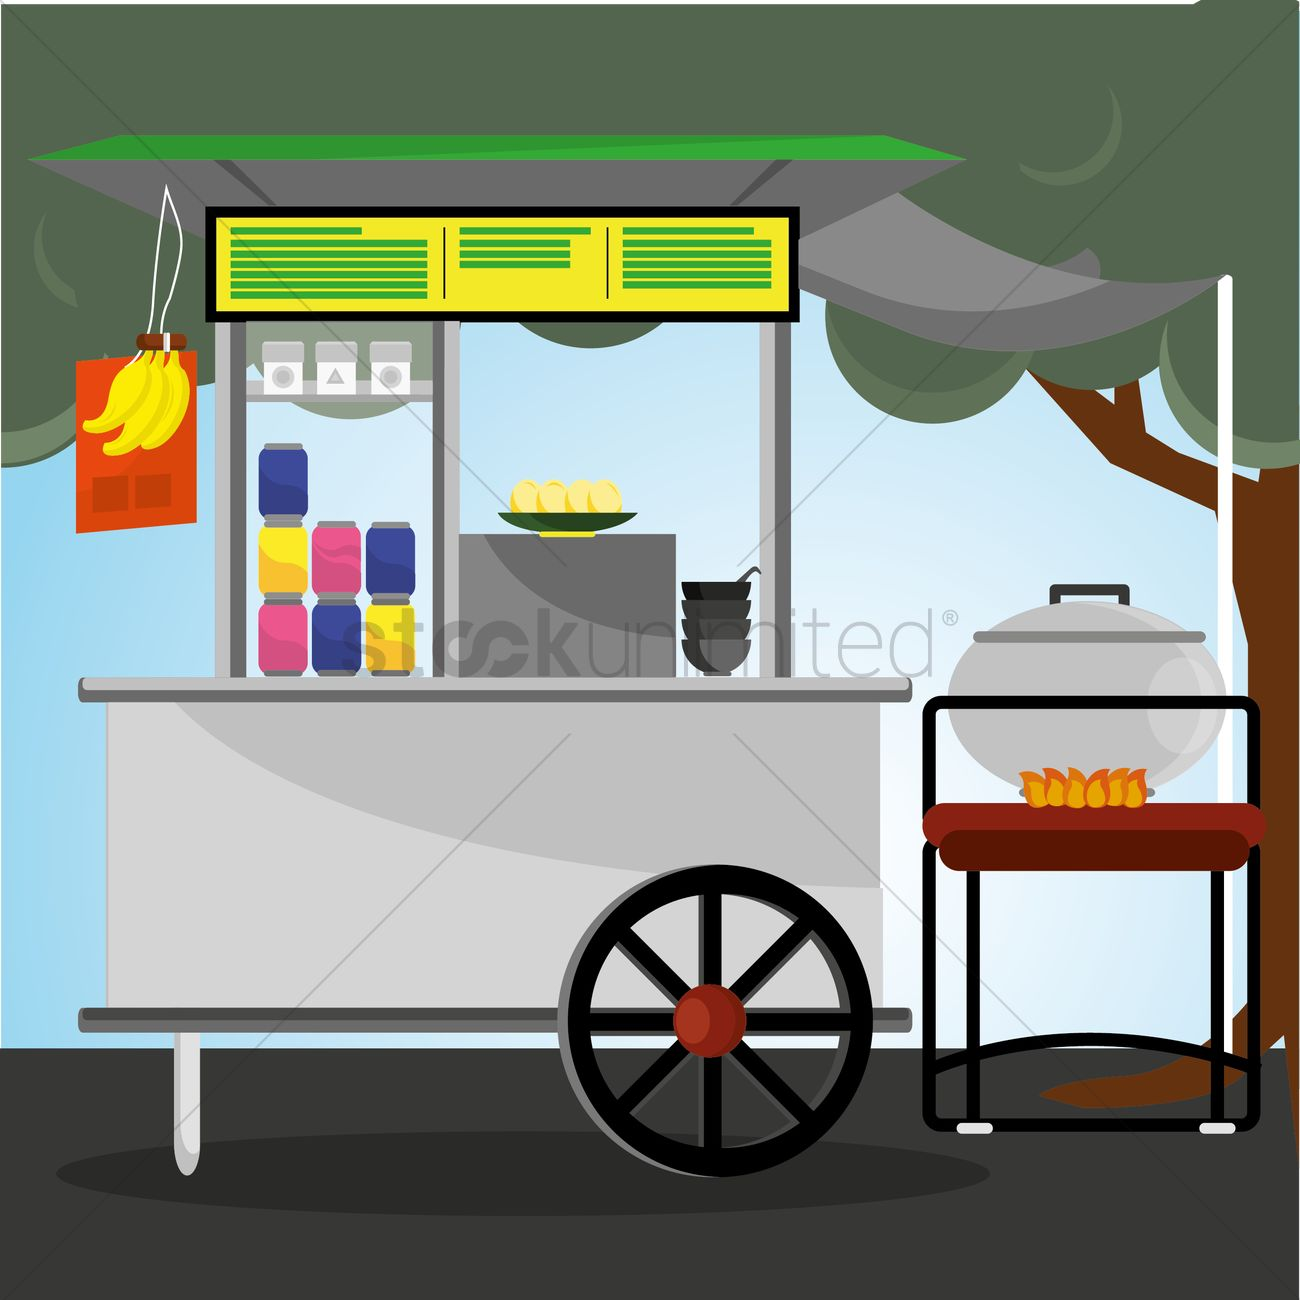 Uruguay street food cart clipart clip black and white Food stall cart with canopy Vector Image - 1409984 ... clip black and white